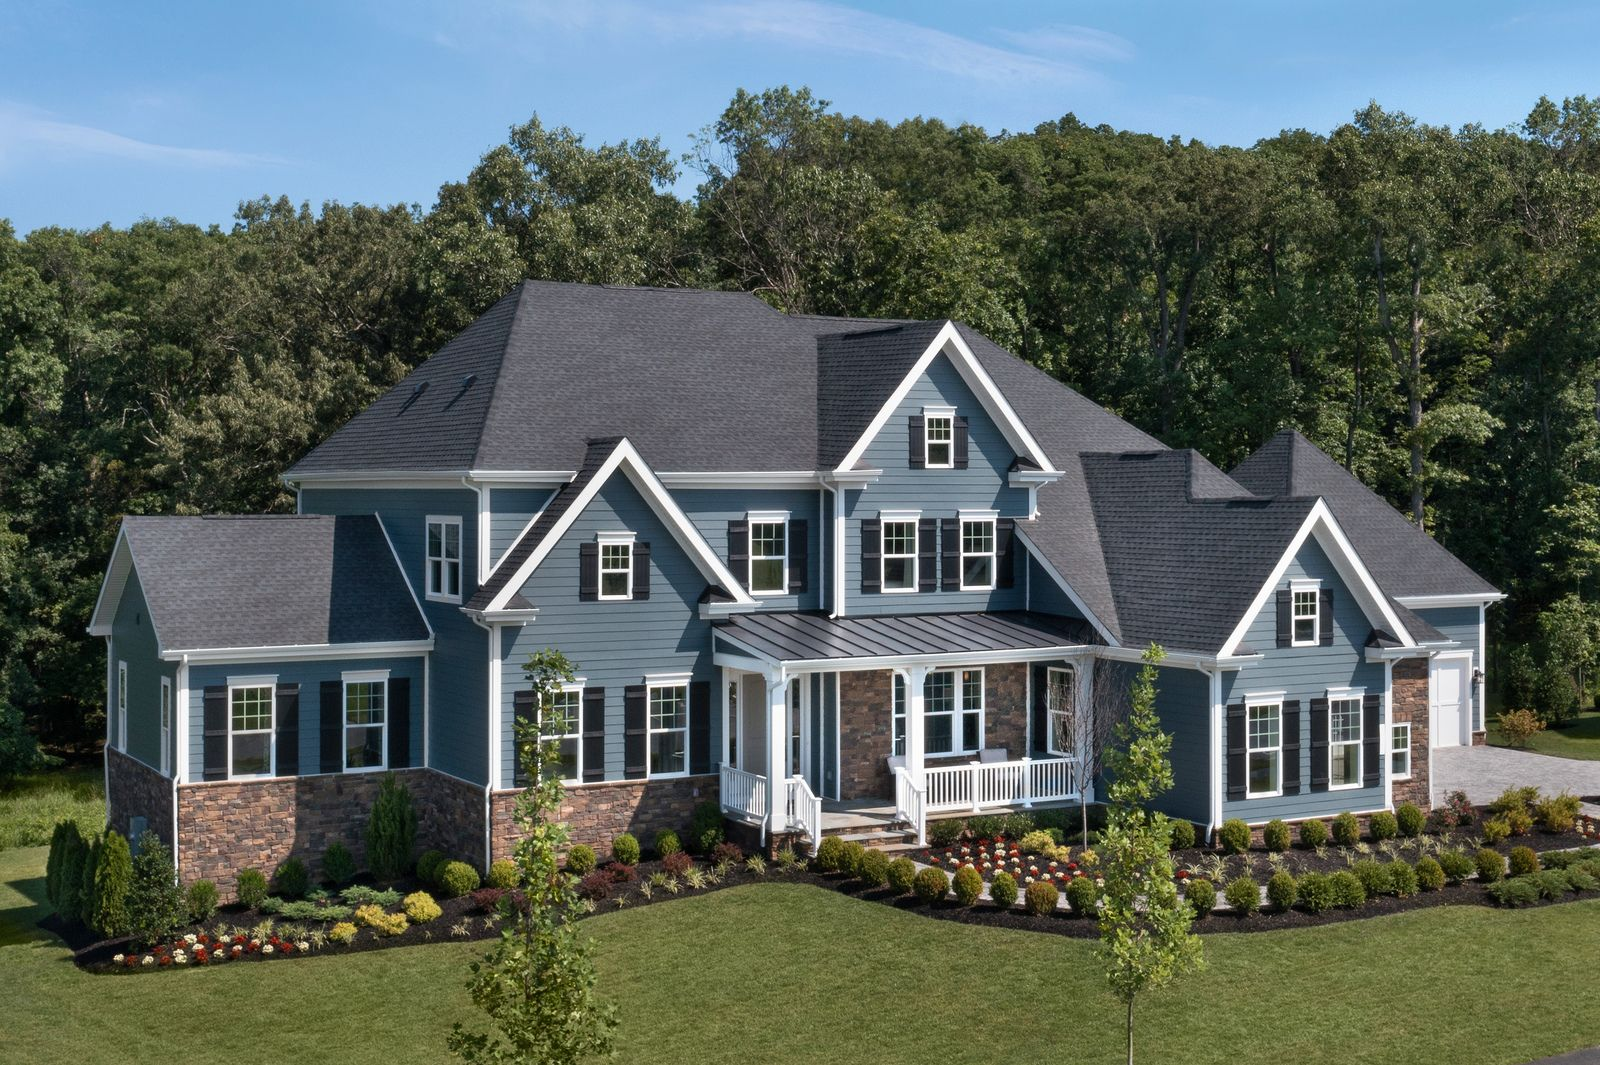 Northern Virginia's Most Sought After Community:With luxurious amenities, pristine homesites, A+ location, and new homes by NV, it's no wonder Hartland is the best-selling community in the region. Come explore it all. Schedule a visit today!